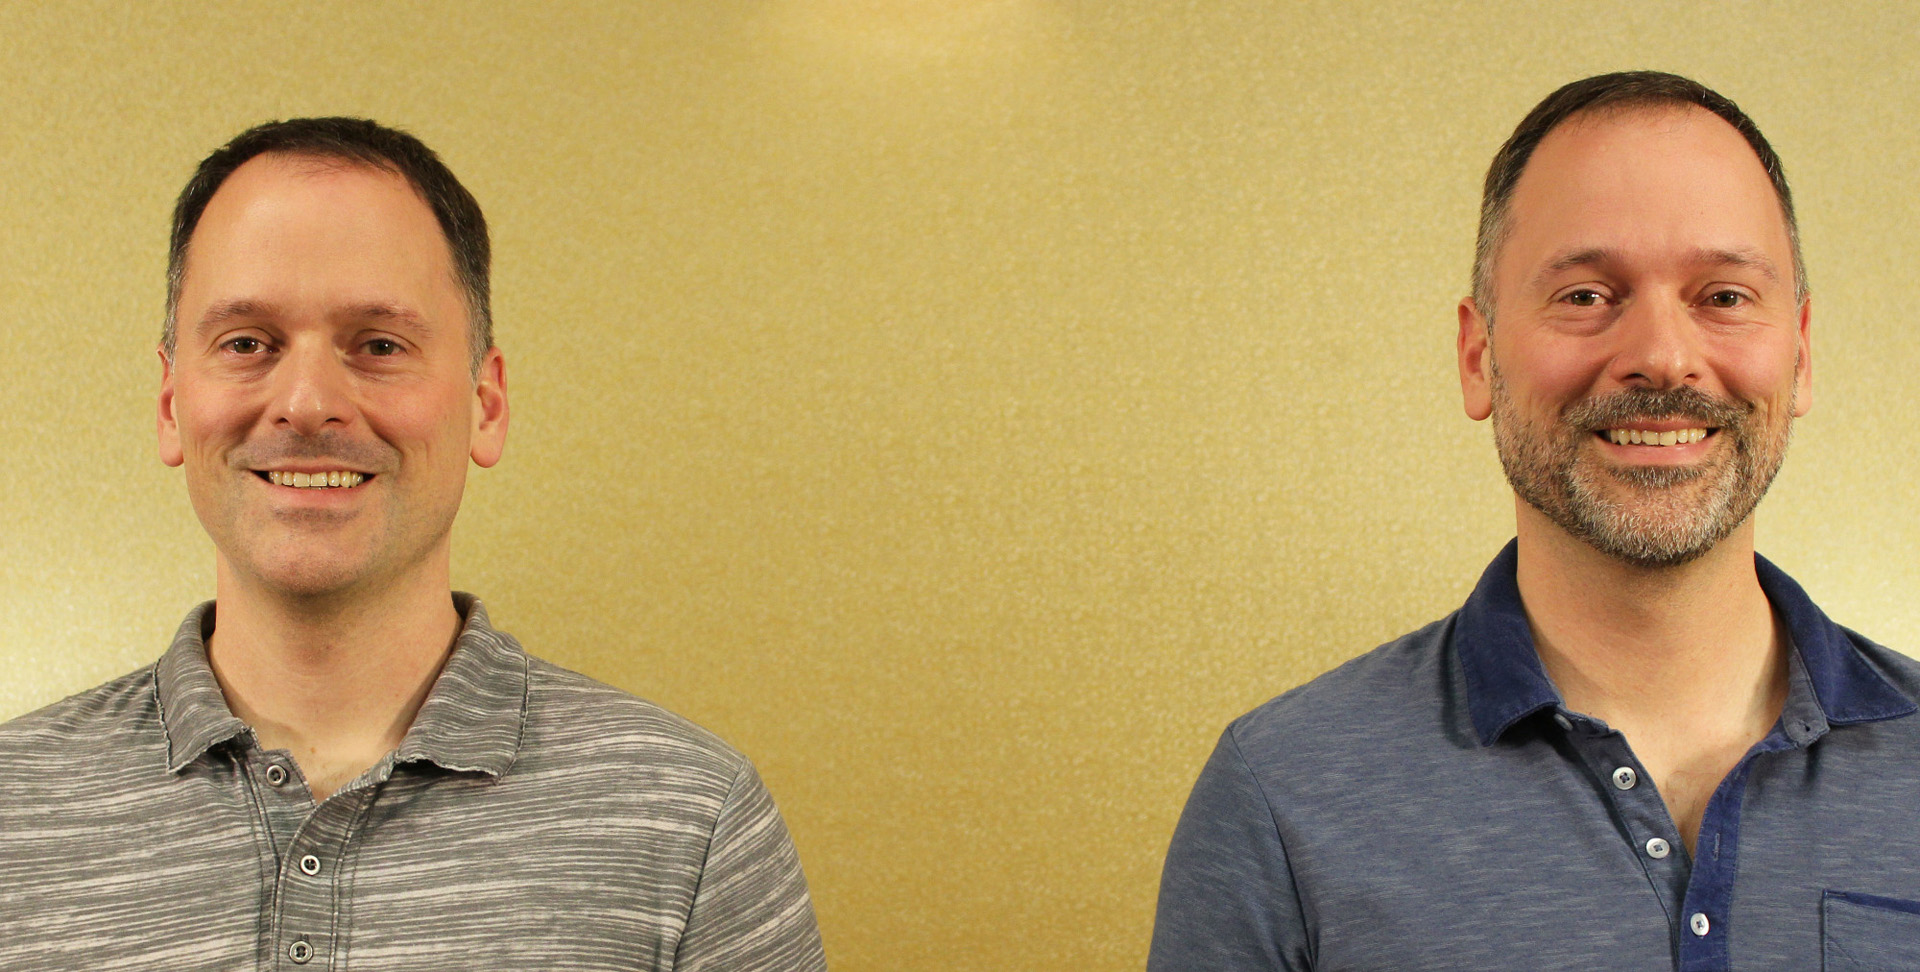 Twin brothers Ashley and Brandon Wright share their pre-makeover looks.